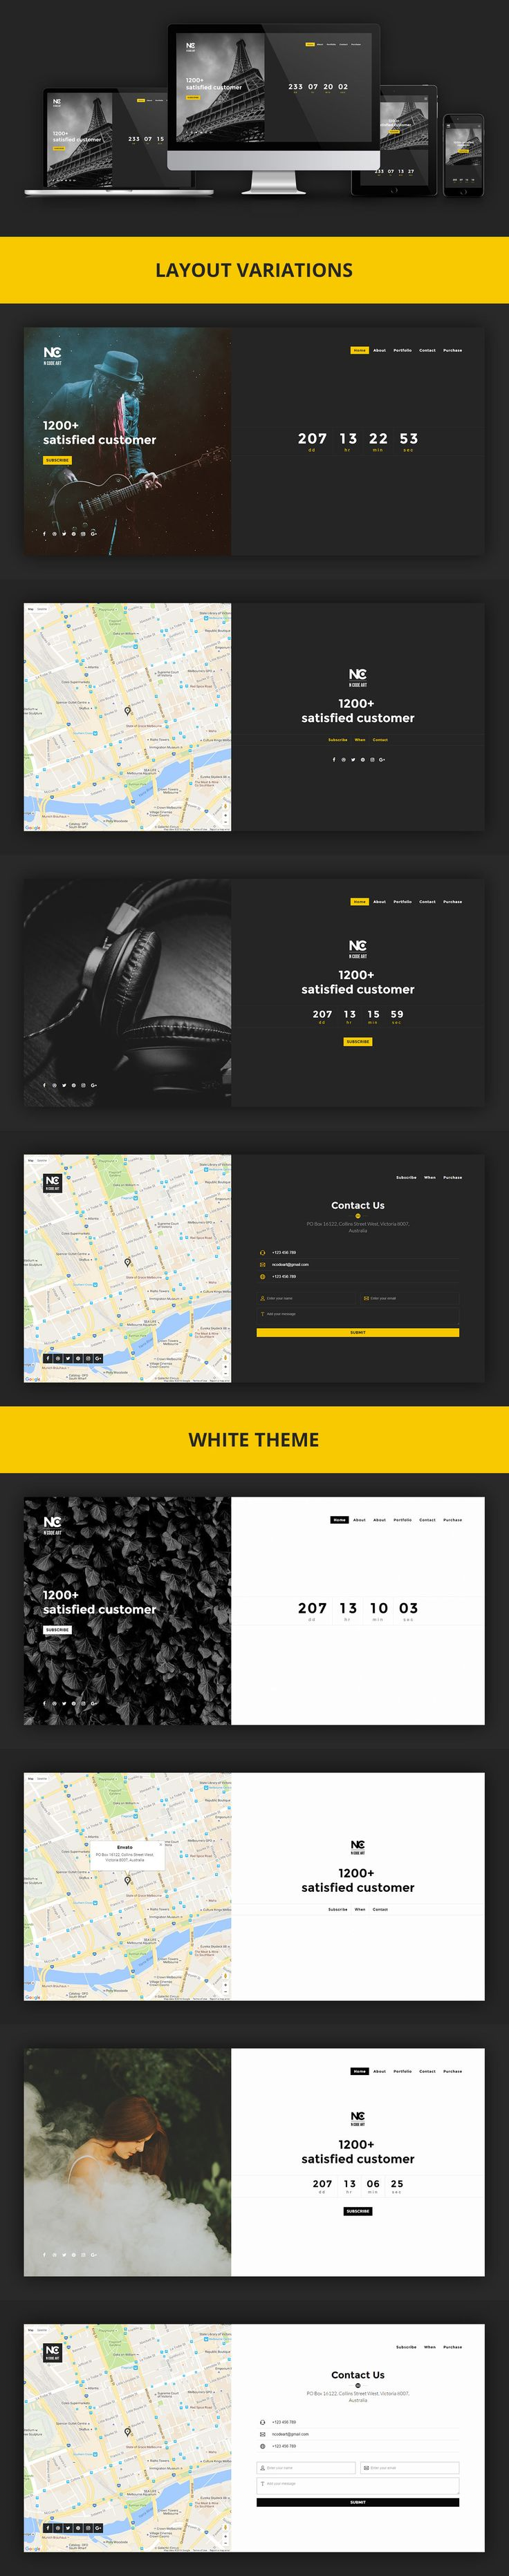 cool mailchimp templates - 1000 ideas about contact form on pinterest wordpress